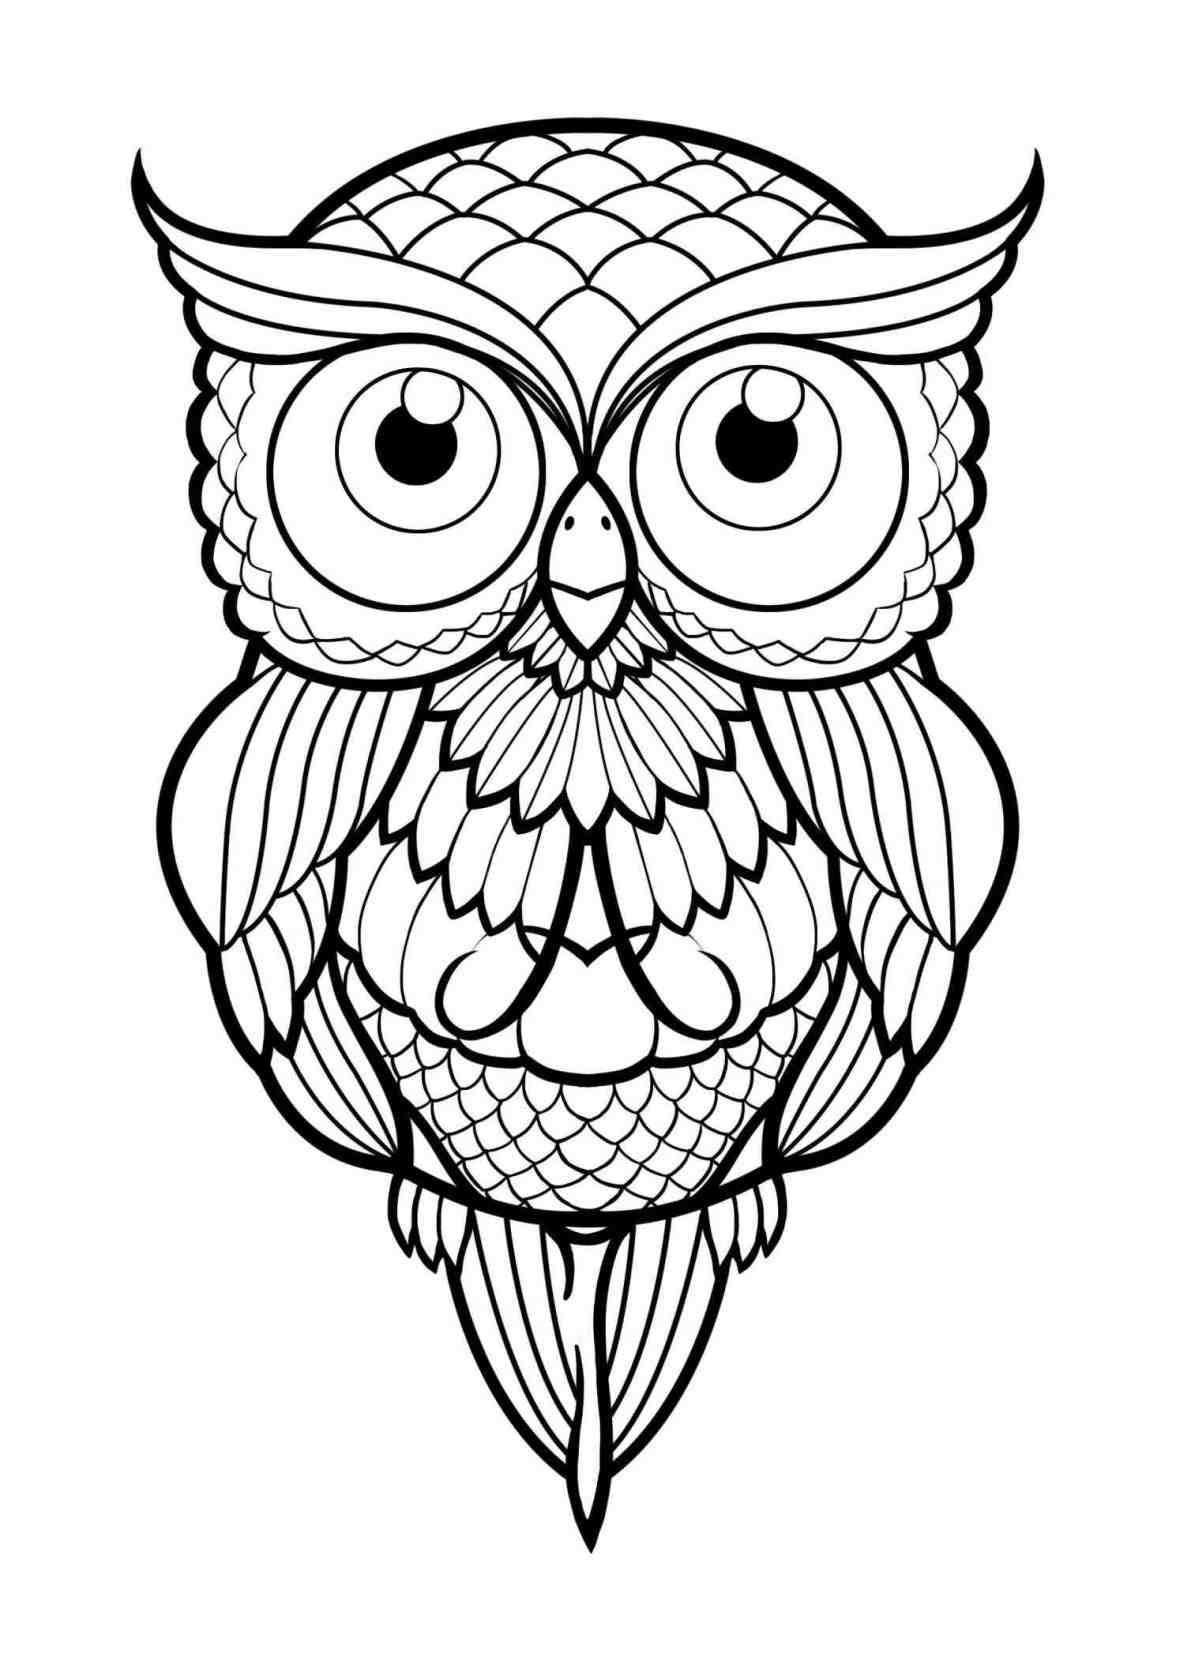 Pin By Iris Woudstra On Coloring Pages Owls Drawing Cute Owl Drawing Owl Drawing Simple